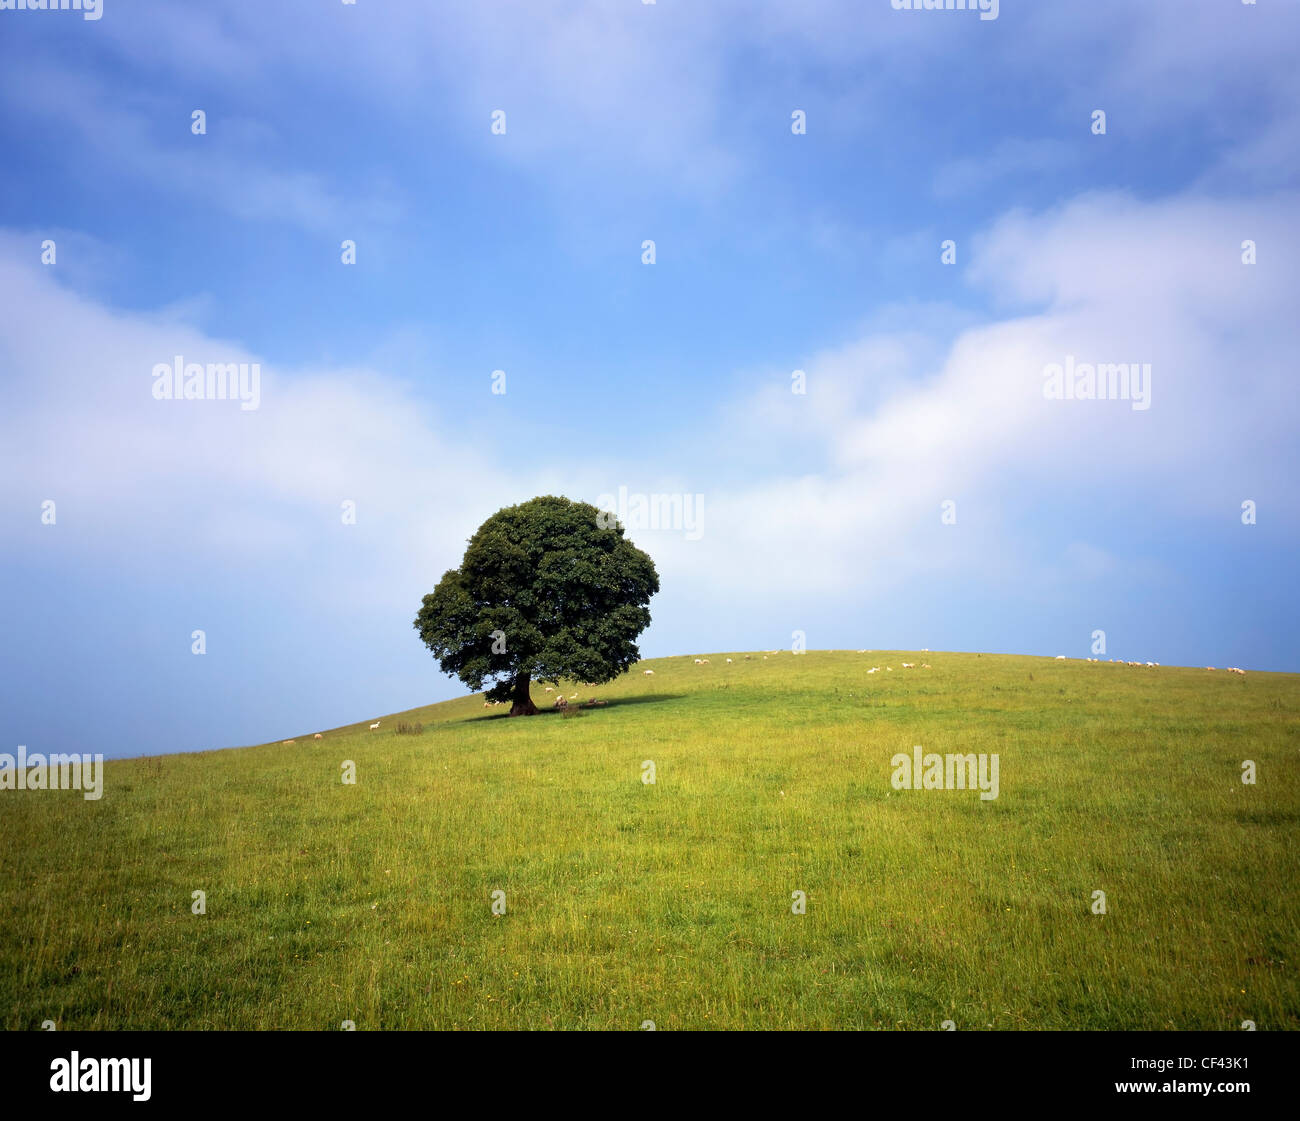 Sheep grazing on a hillside with a lone tree. - Stock Image